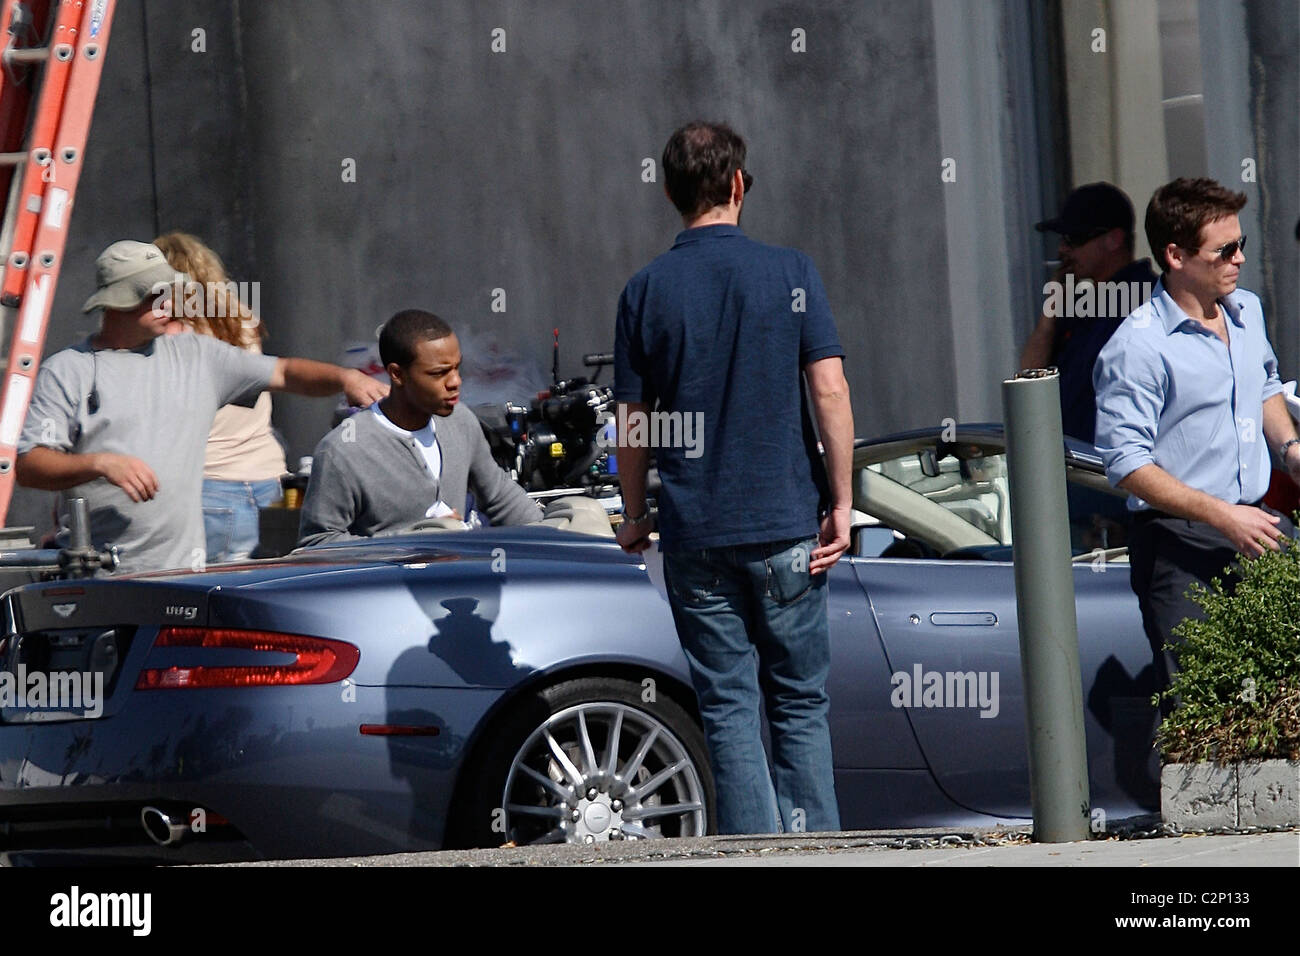 Bow Wow And Kevin Connolly On The Film Set For Hbo S Entourage In Stock Photo Alamy